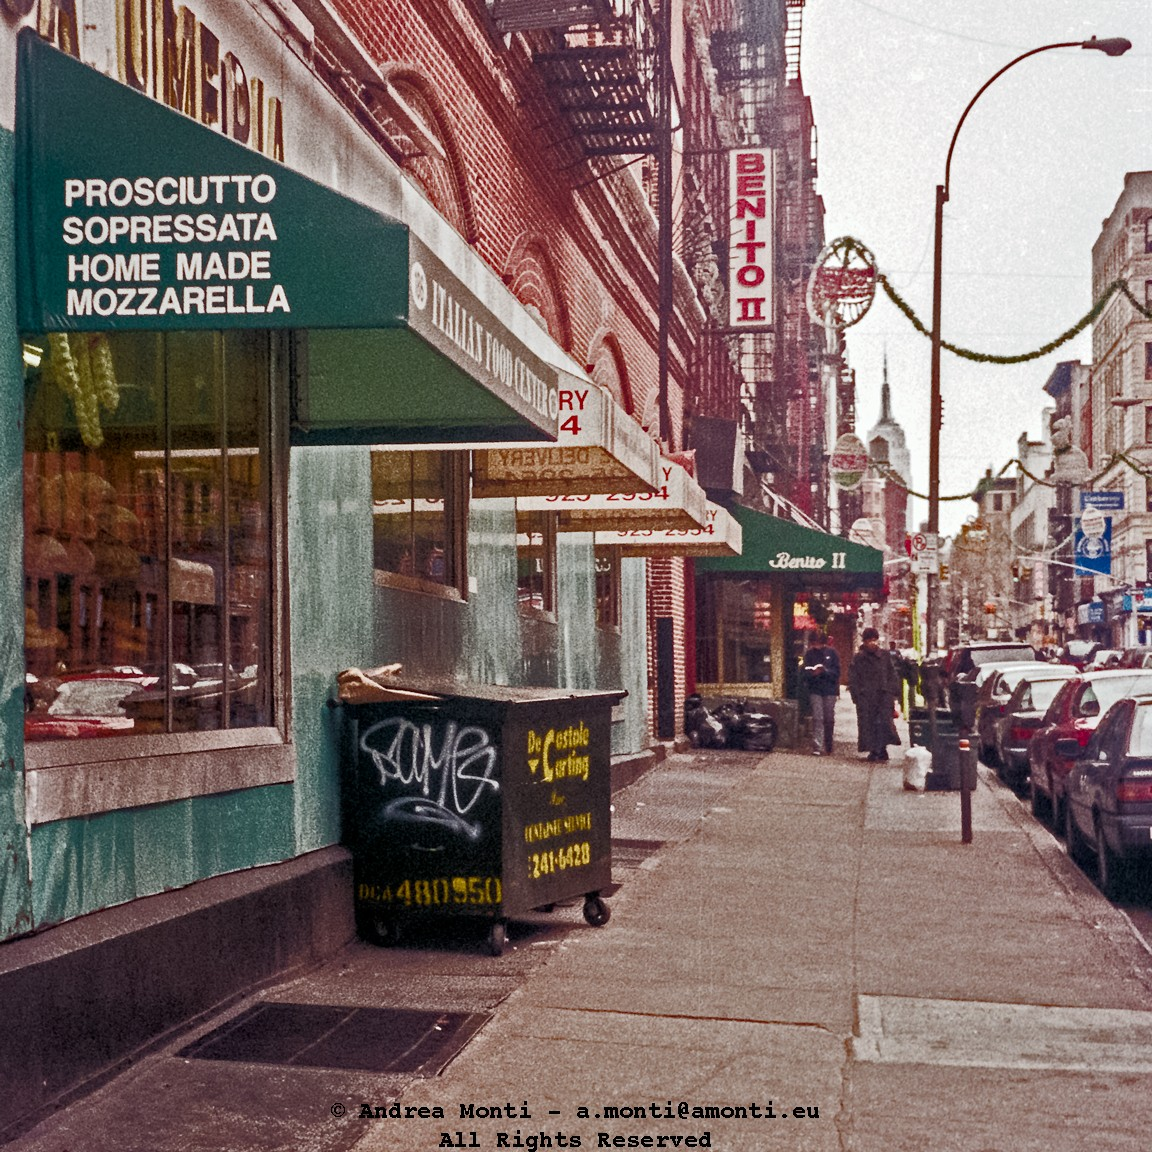 Mulberry Street, When Benito II Was Still There…